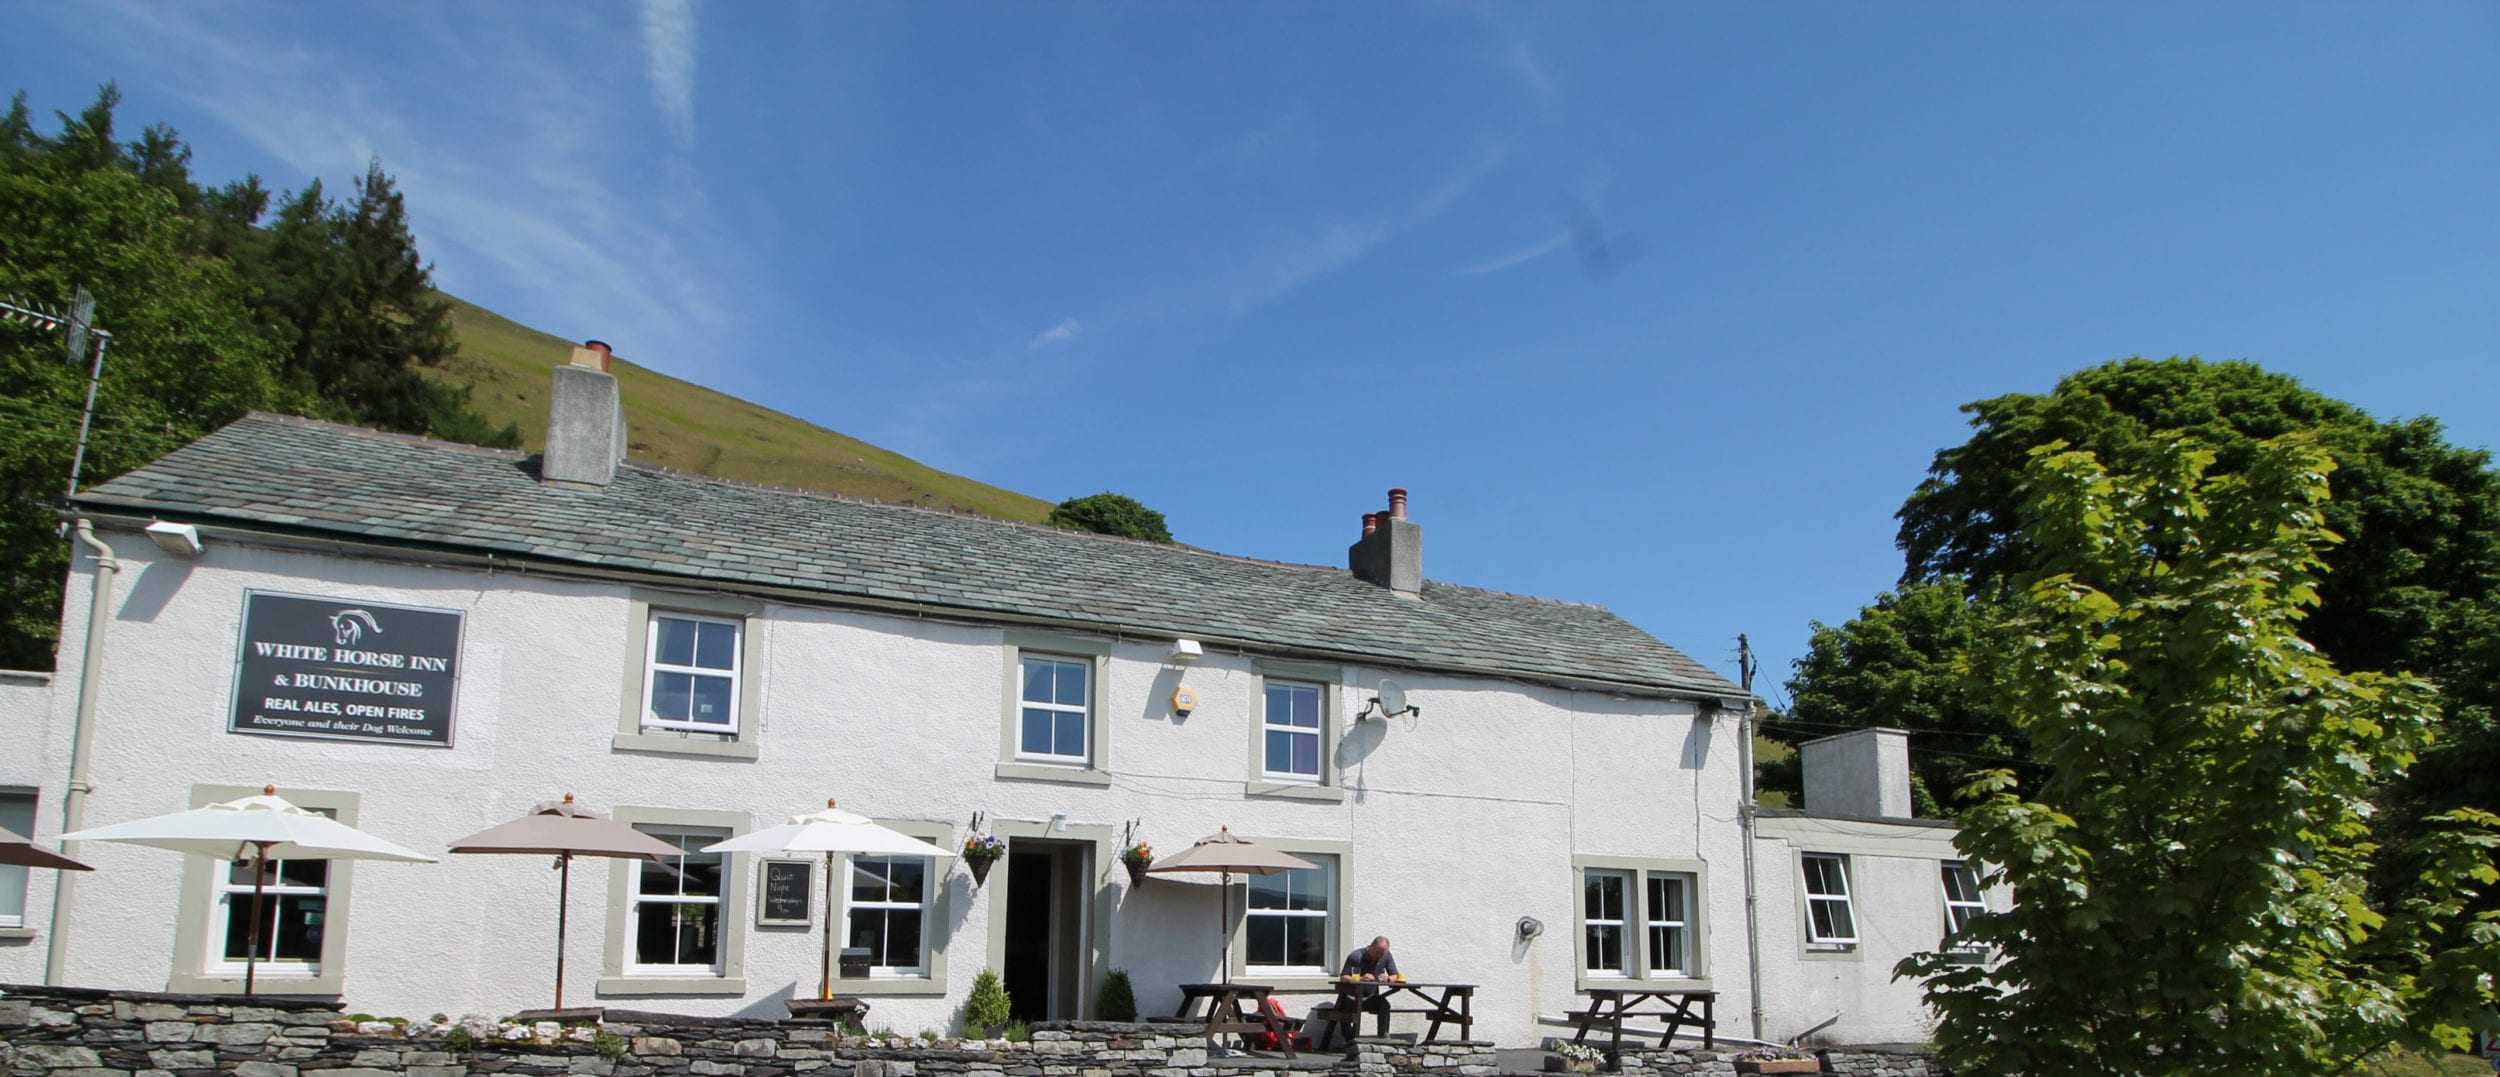 Accommodation on the Bob Graham Round, The White Horse Inn Bunkhouse